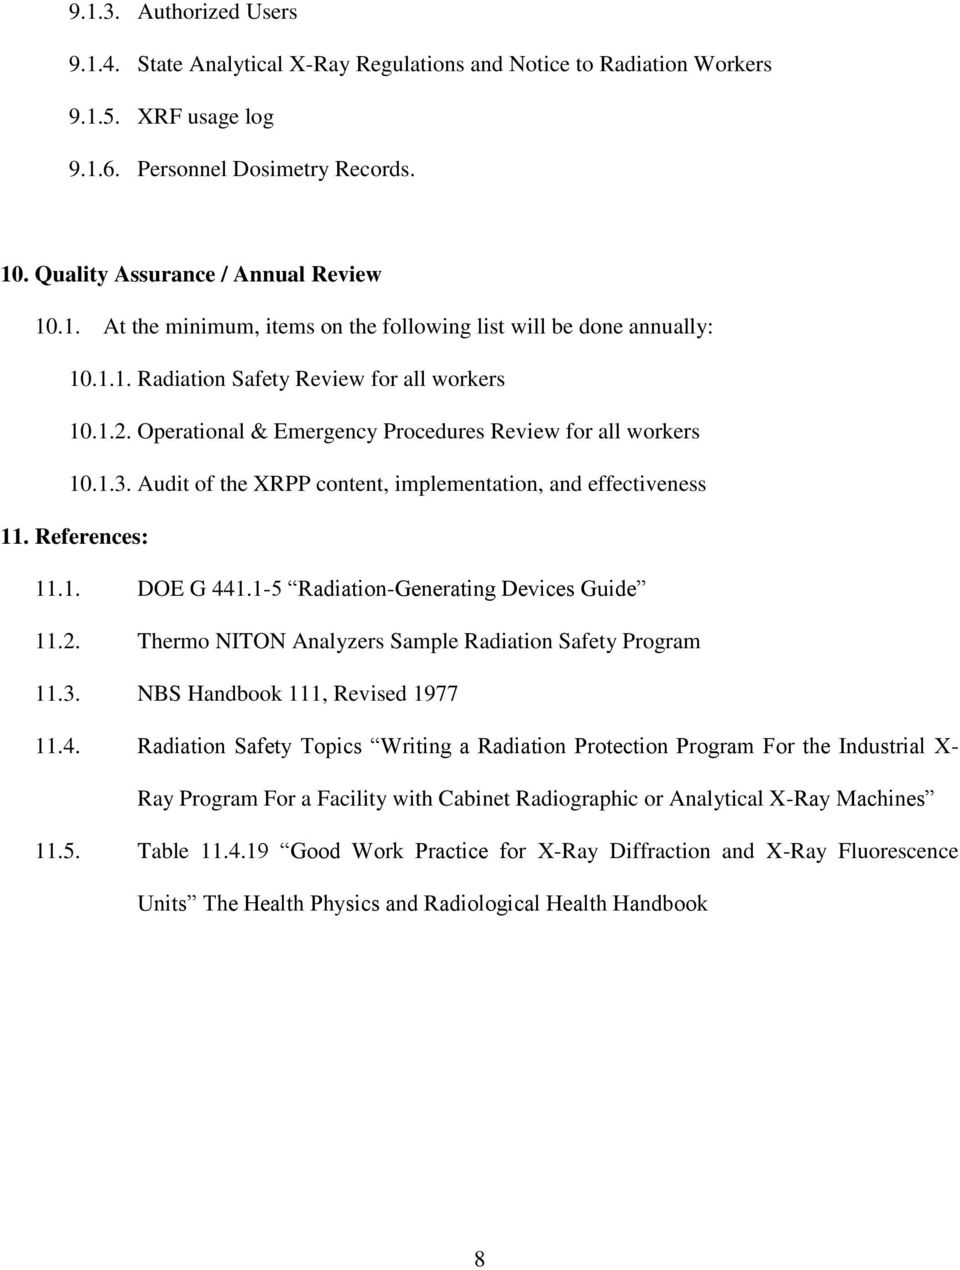 The University Of Southern Maine Xrf X Ray Radiation Protection